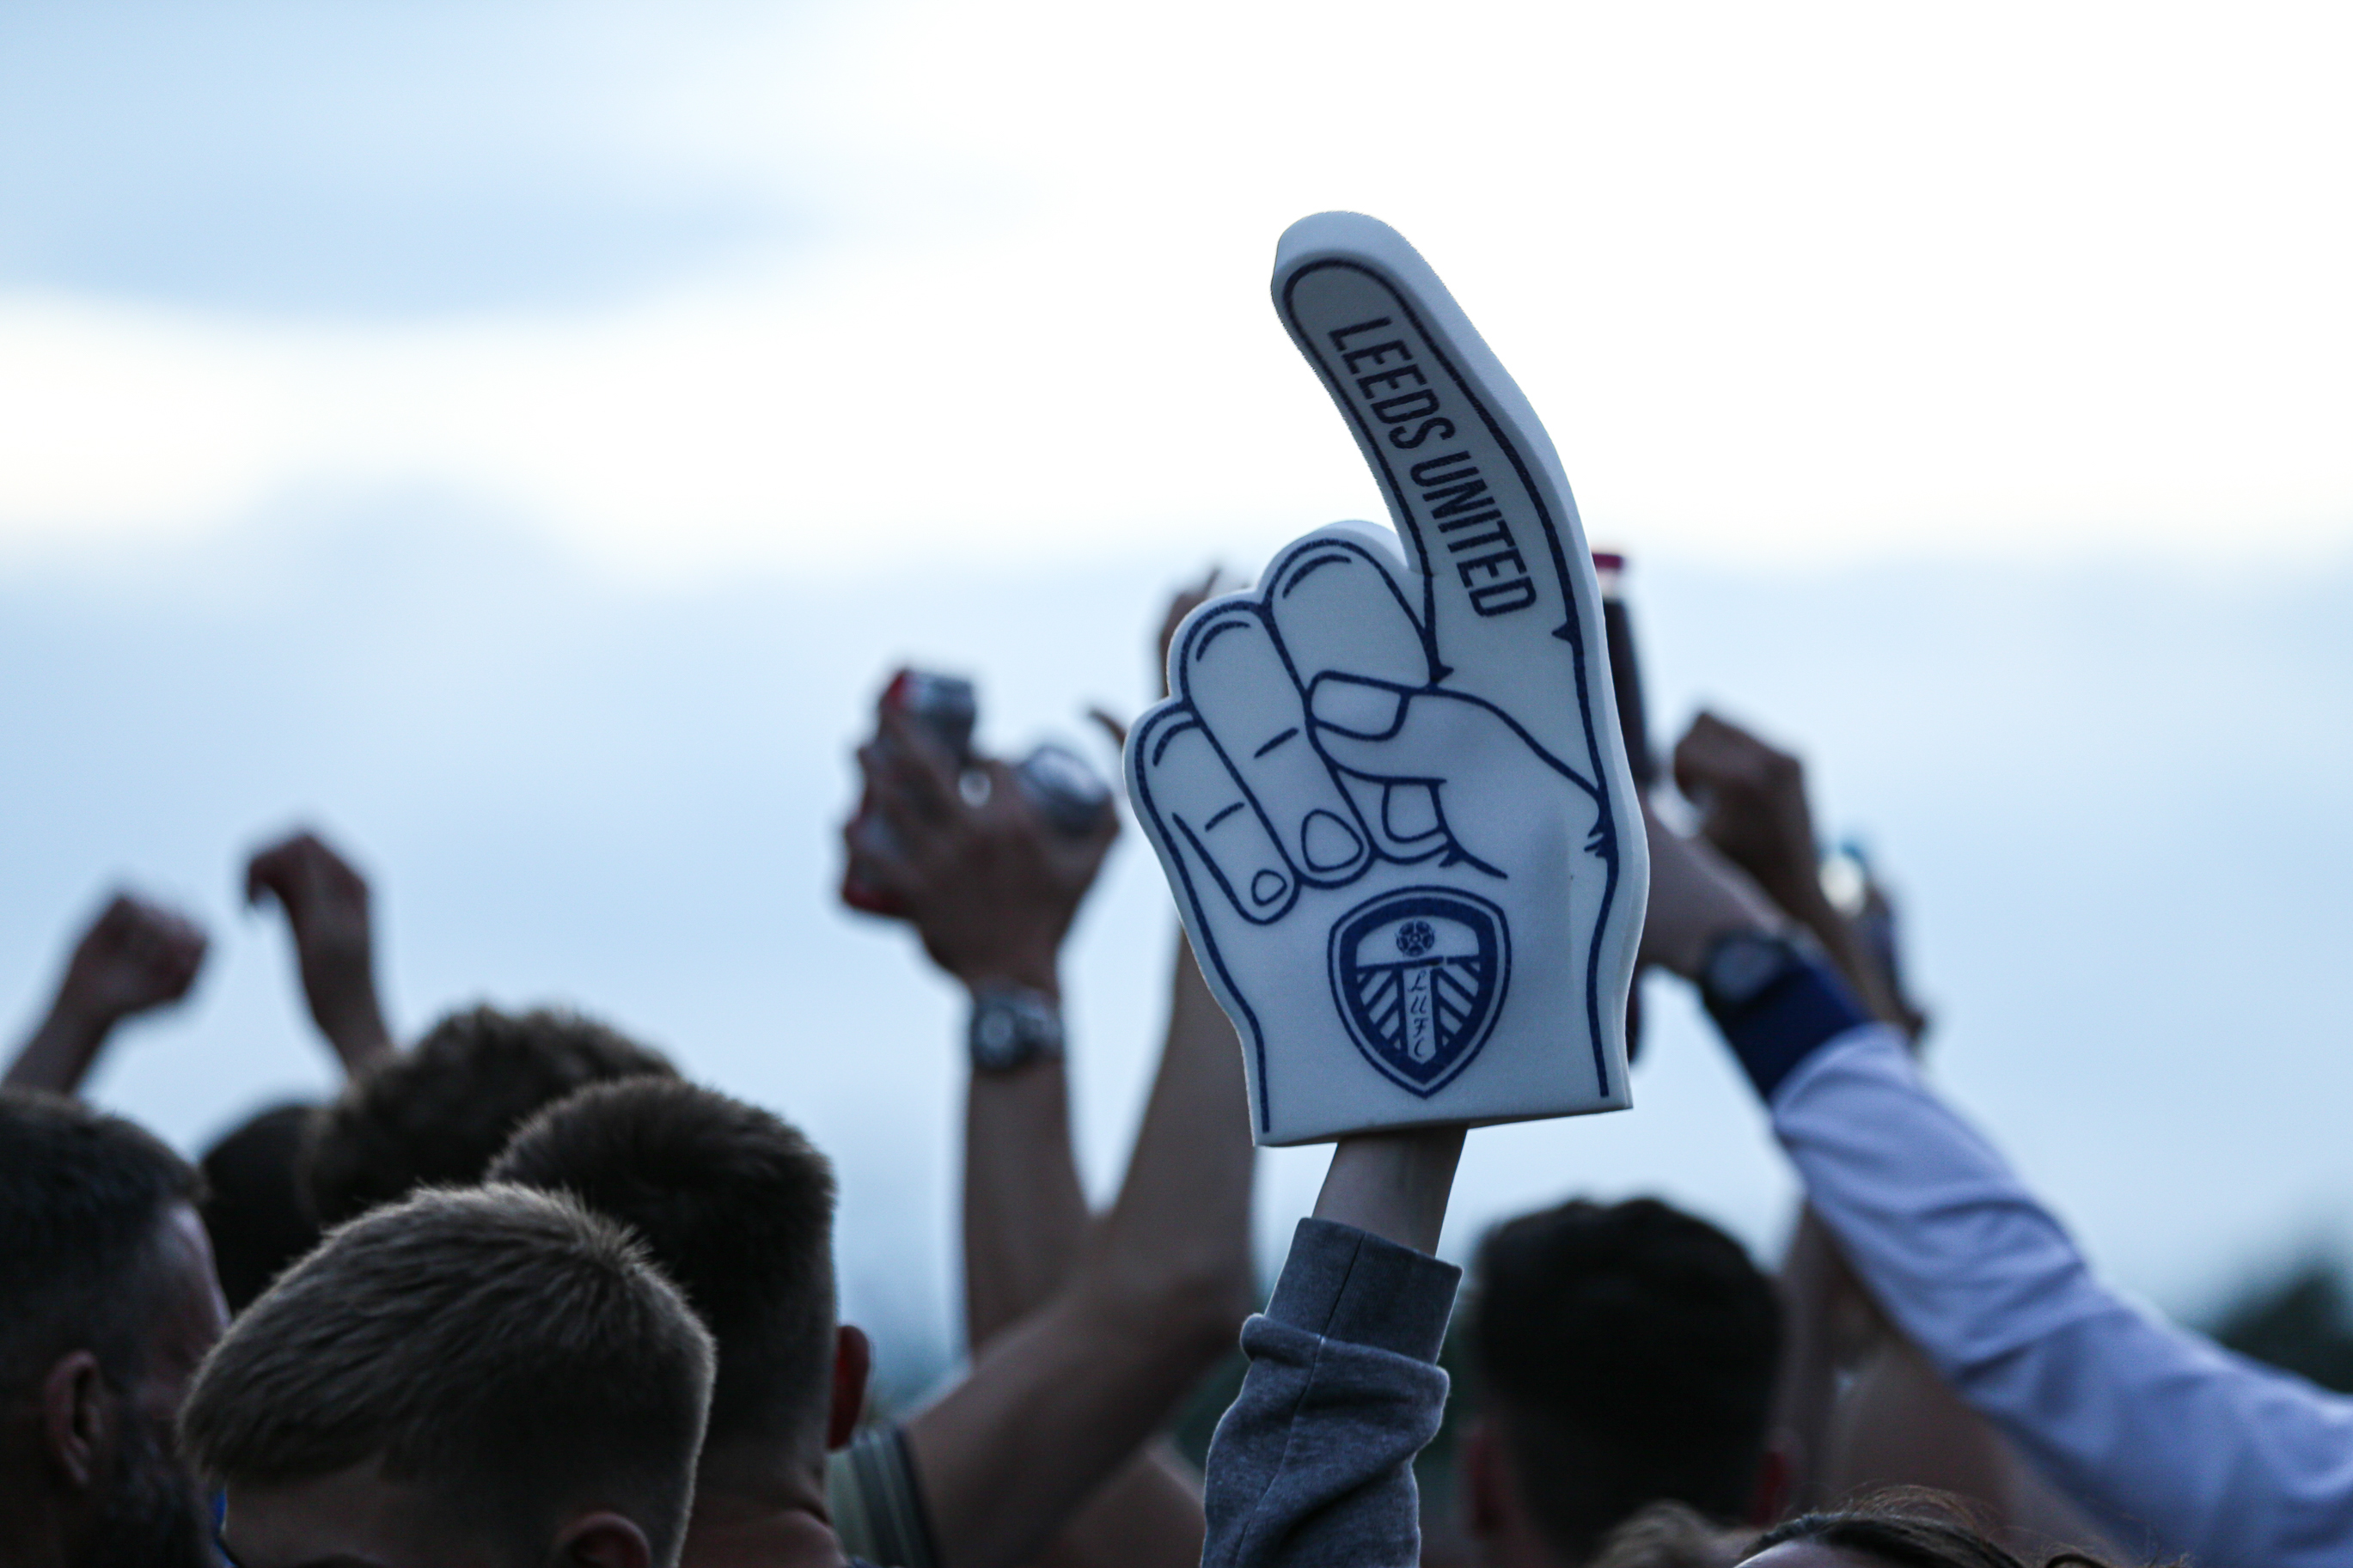 Leeds United foam finger